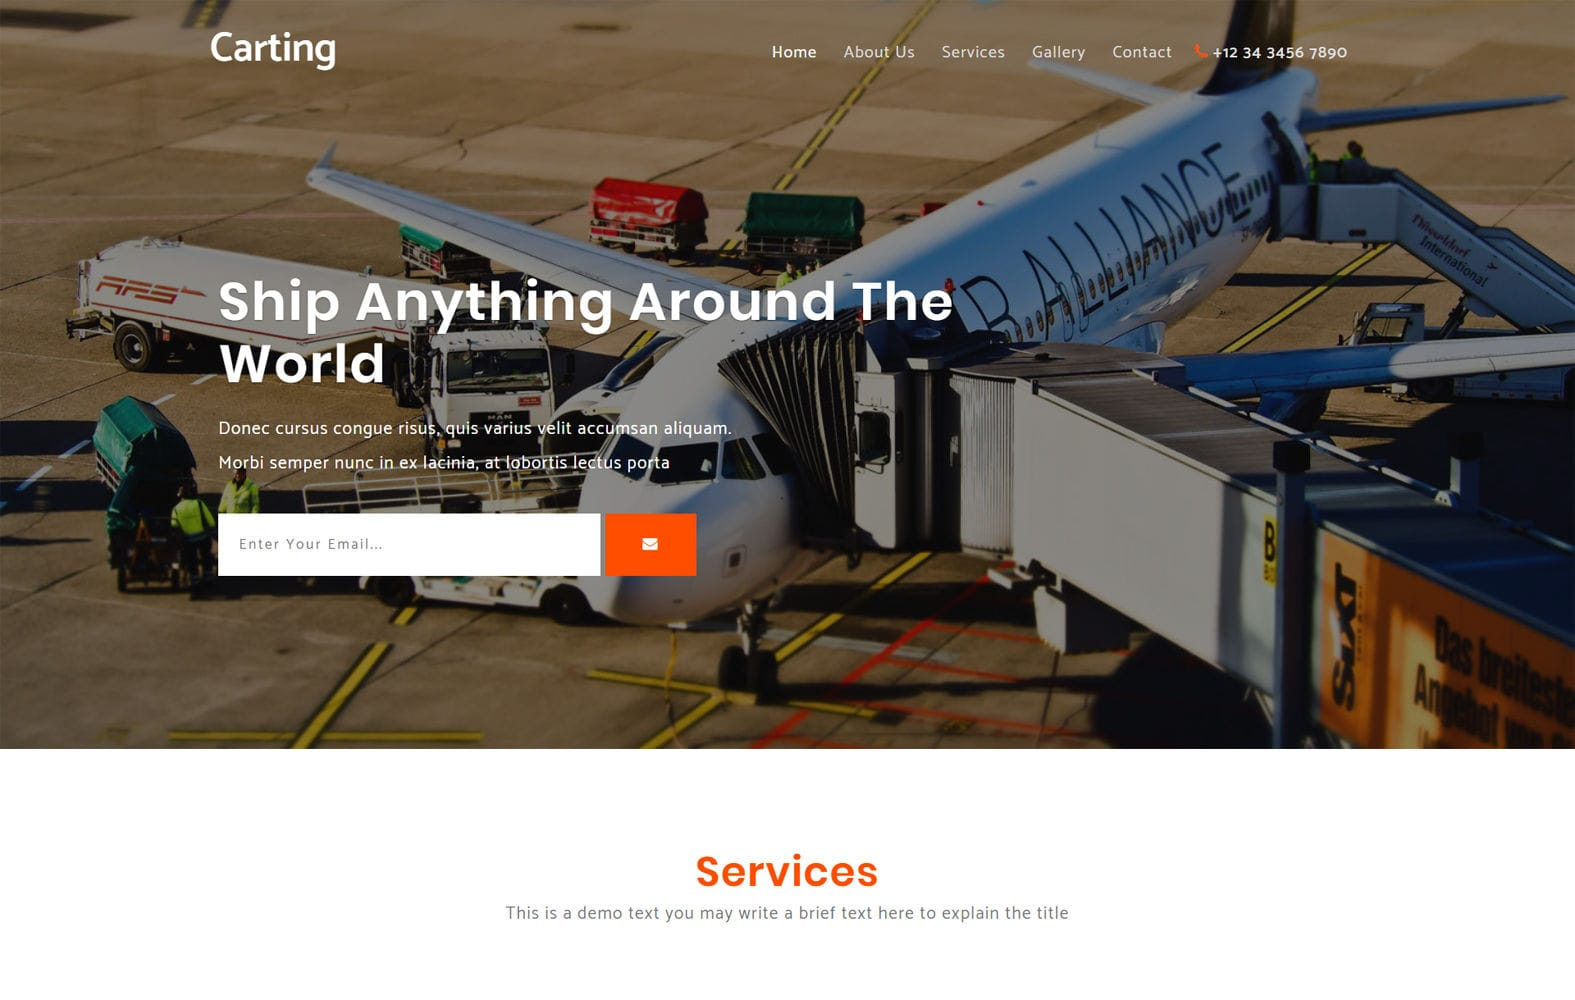 Carting a Transport Category Bootstrap Responsive Web Template